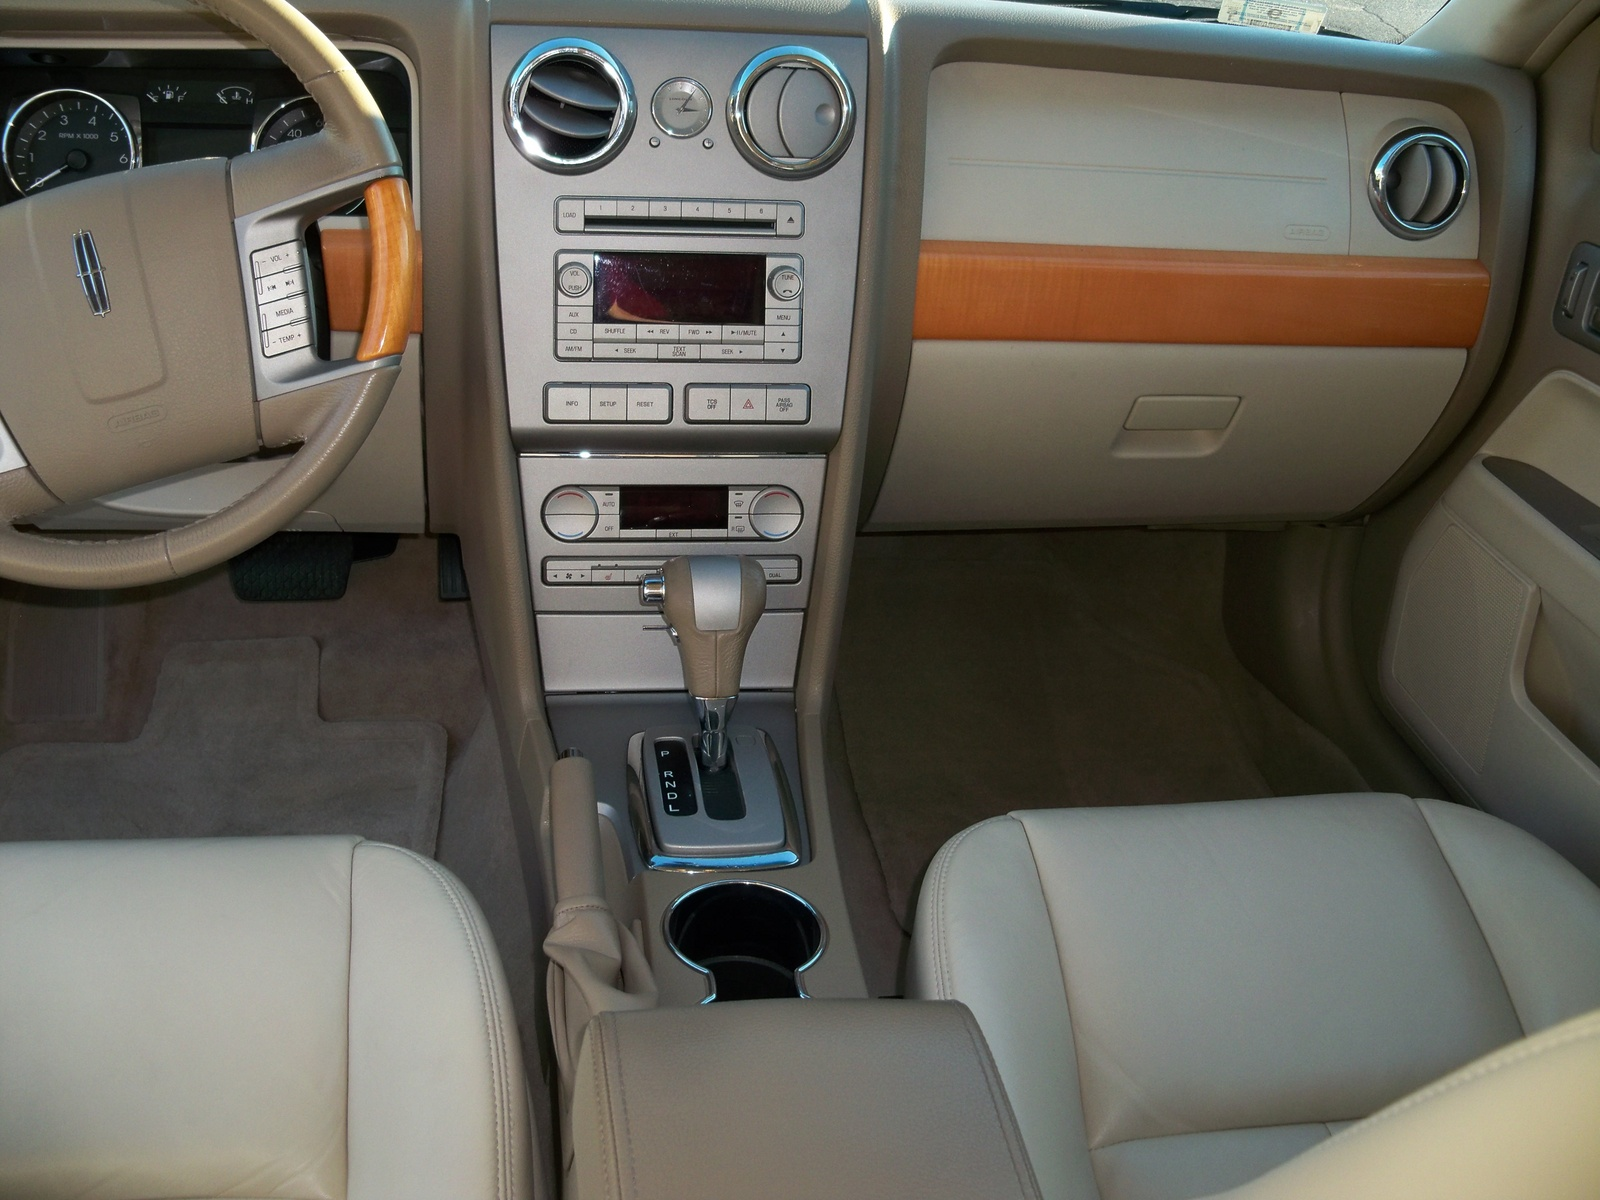 2007 lincoln mkz interior pictures cargurus